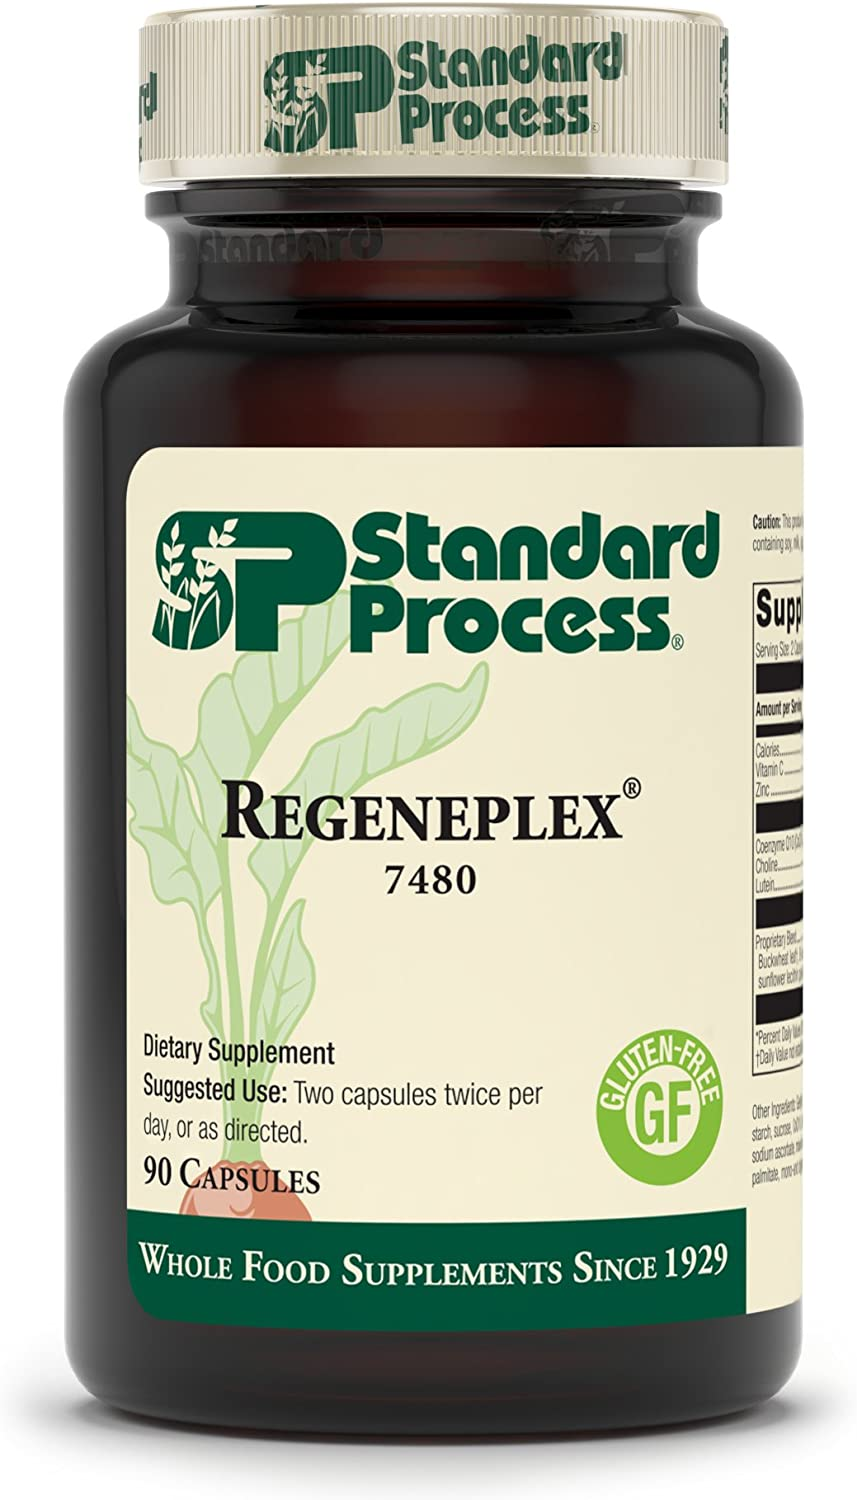 Standard Process Regeneplex - Whole Food Antioxidant, Blood Circulation and Skin Health, Digestion and Digestive Health with Coenzyme Q10 and Holy Basil for Wrinkles and Fine Lines - 90 Capsules